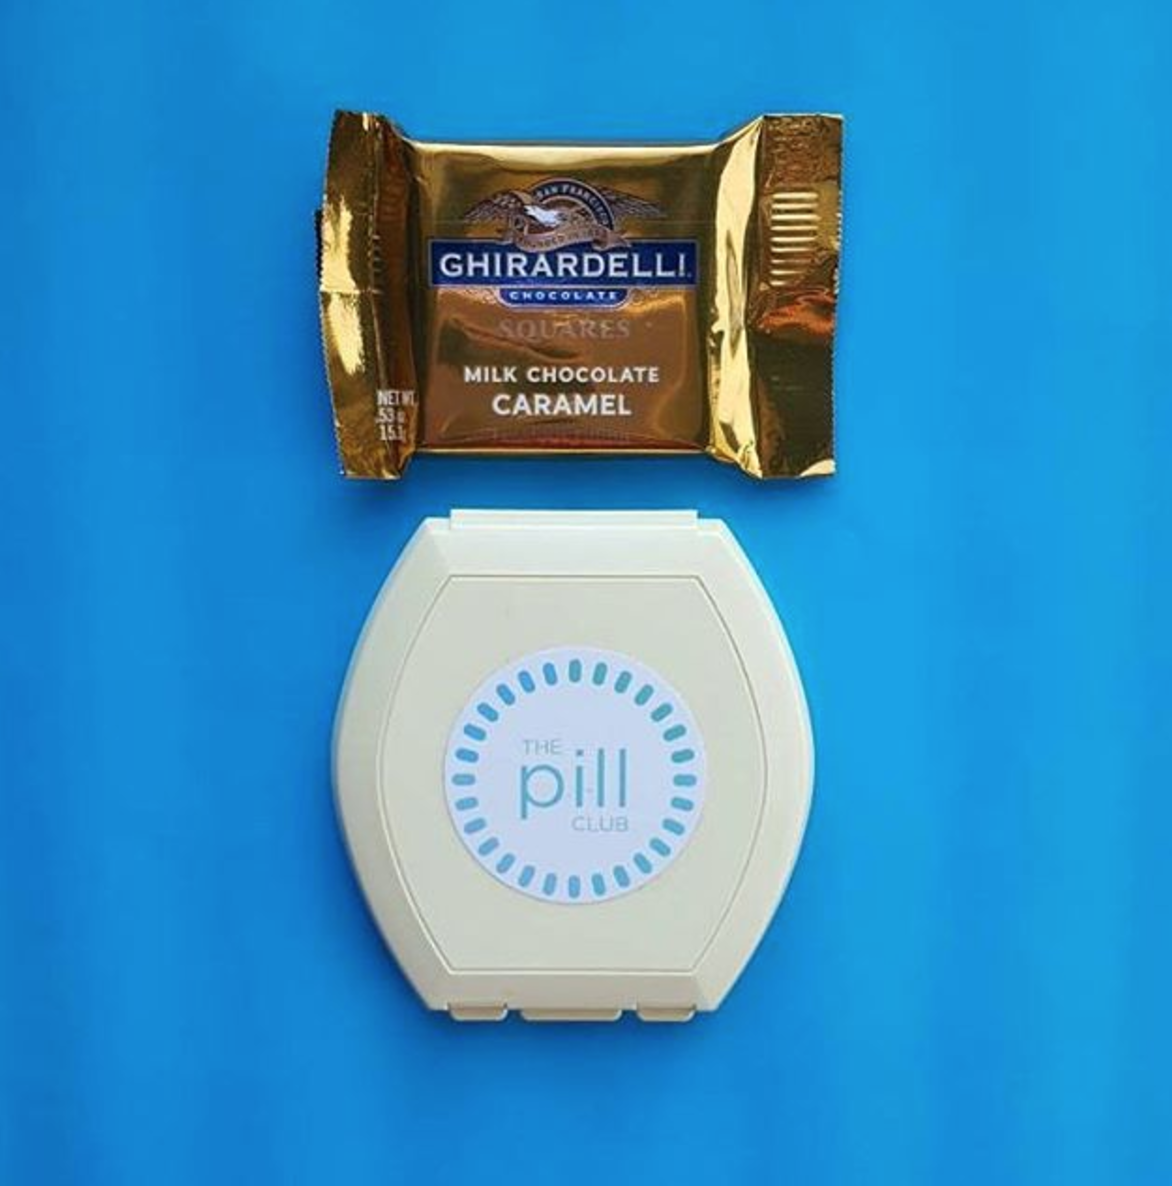 This company will deliver your birth control *and* special treats every month